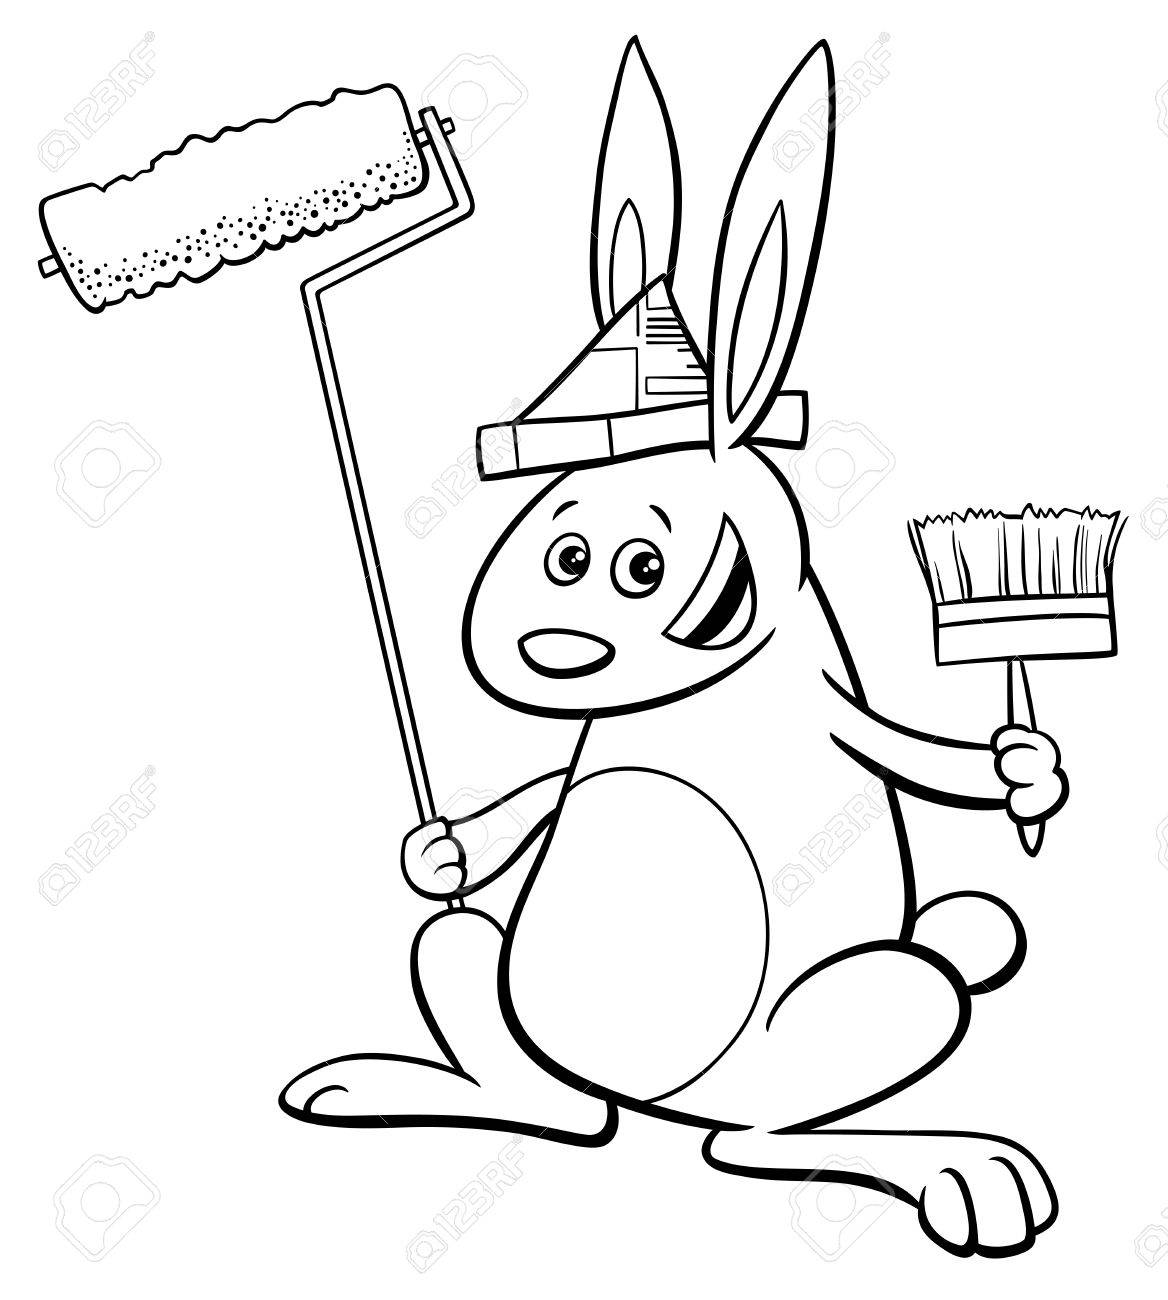 black and white cartoon illustration of rabbit painter fantasy